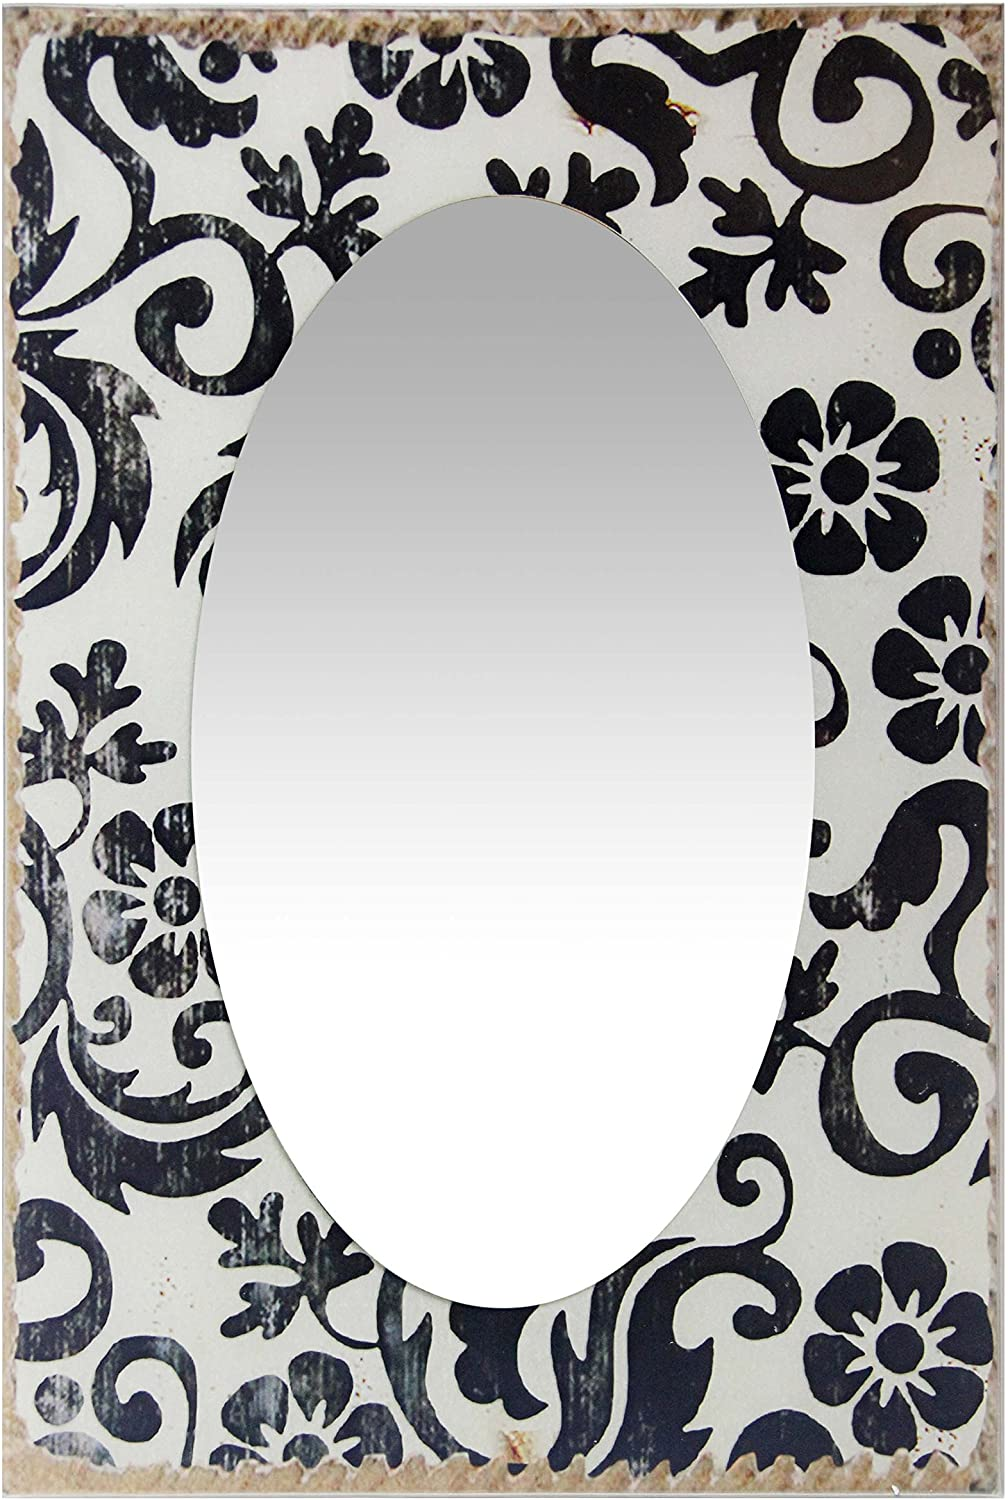 French Country Floral Rectangular Large Oversized Decorative Wall Mirror 23.5 inch Black & White Paint Frame by Infinity Instruments